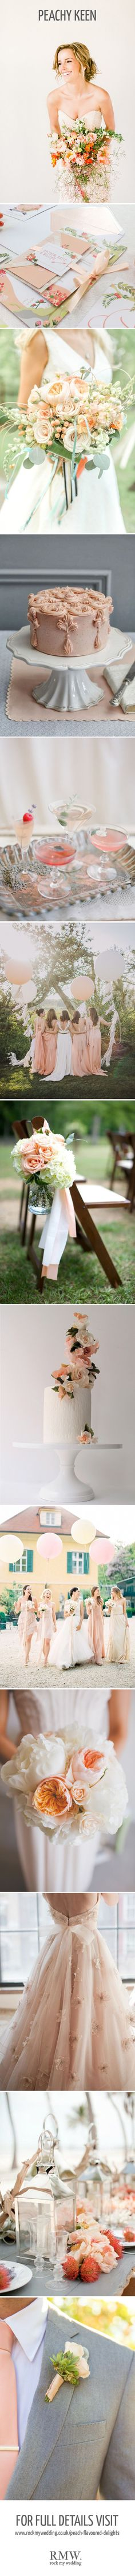 peach and coral colour inspiration for a wedding | Wedding Ideas | Peach / Coral Mood Board | http://www.rockmywedding.co.uk/peach-flavoured-delights/